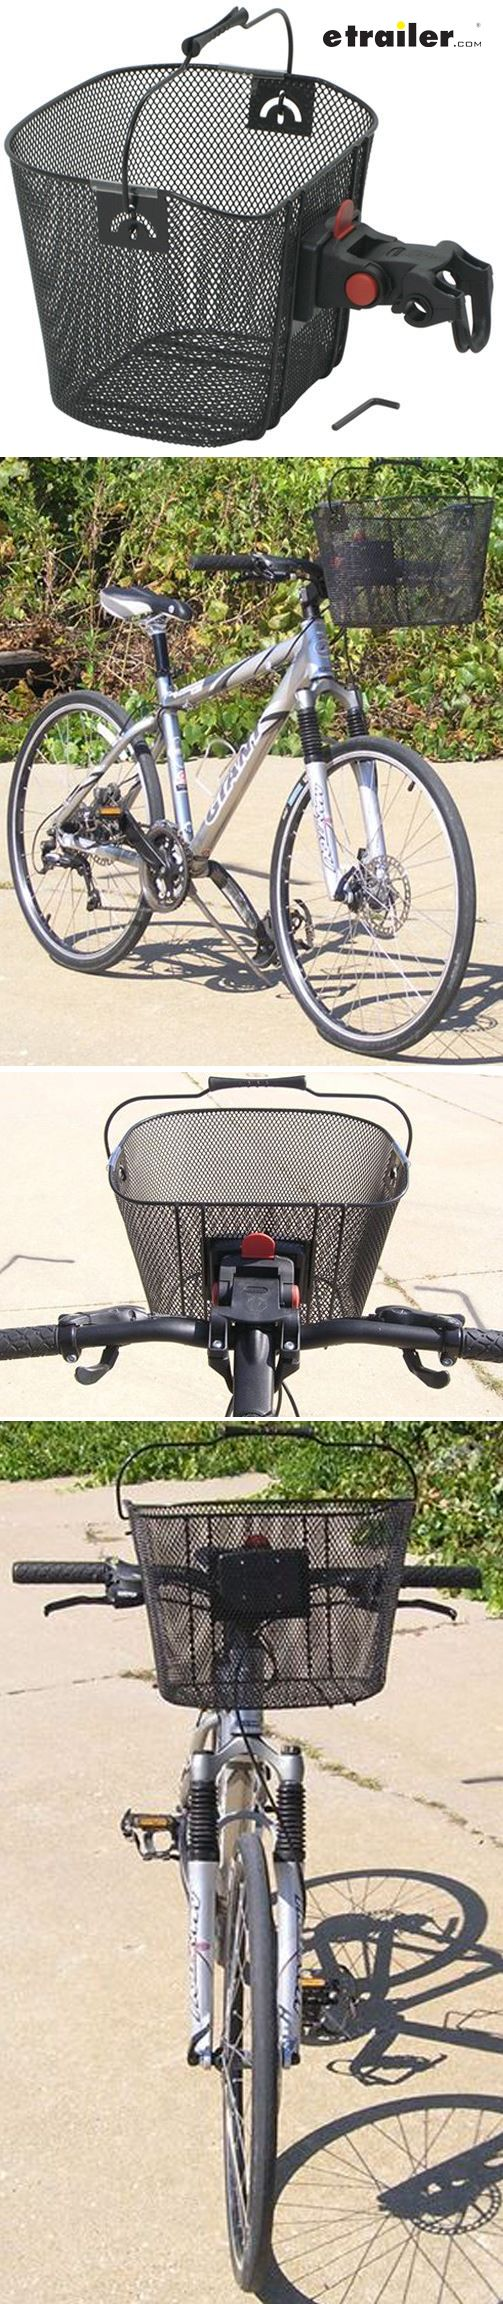 Don't worry about wearing back packs or hanging bags from the handle bars anymore. This is the perfect addition for a casual ride. The Deluxe Quick Release Bracket securely grasps the front of the bike and snaps to the back of the Retro Bike Basket, offering a stable ride for the basket's contents. The basket also easily detaches for loading and unloading, while the handle makes carrying a breeze.